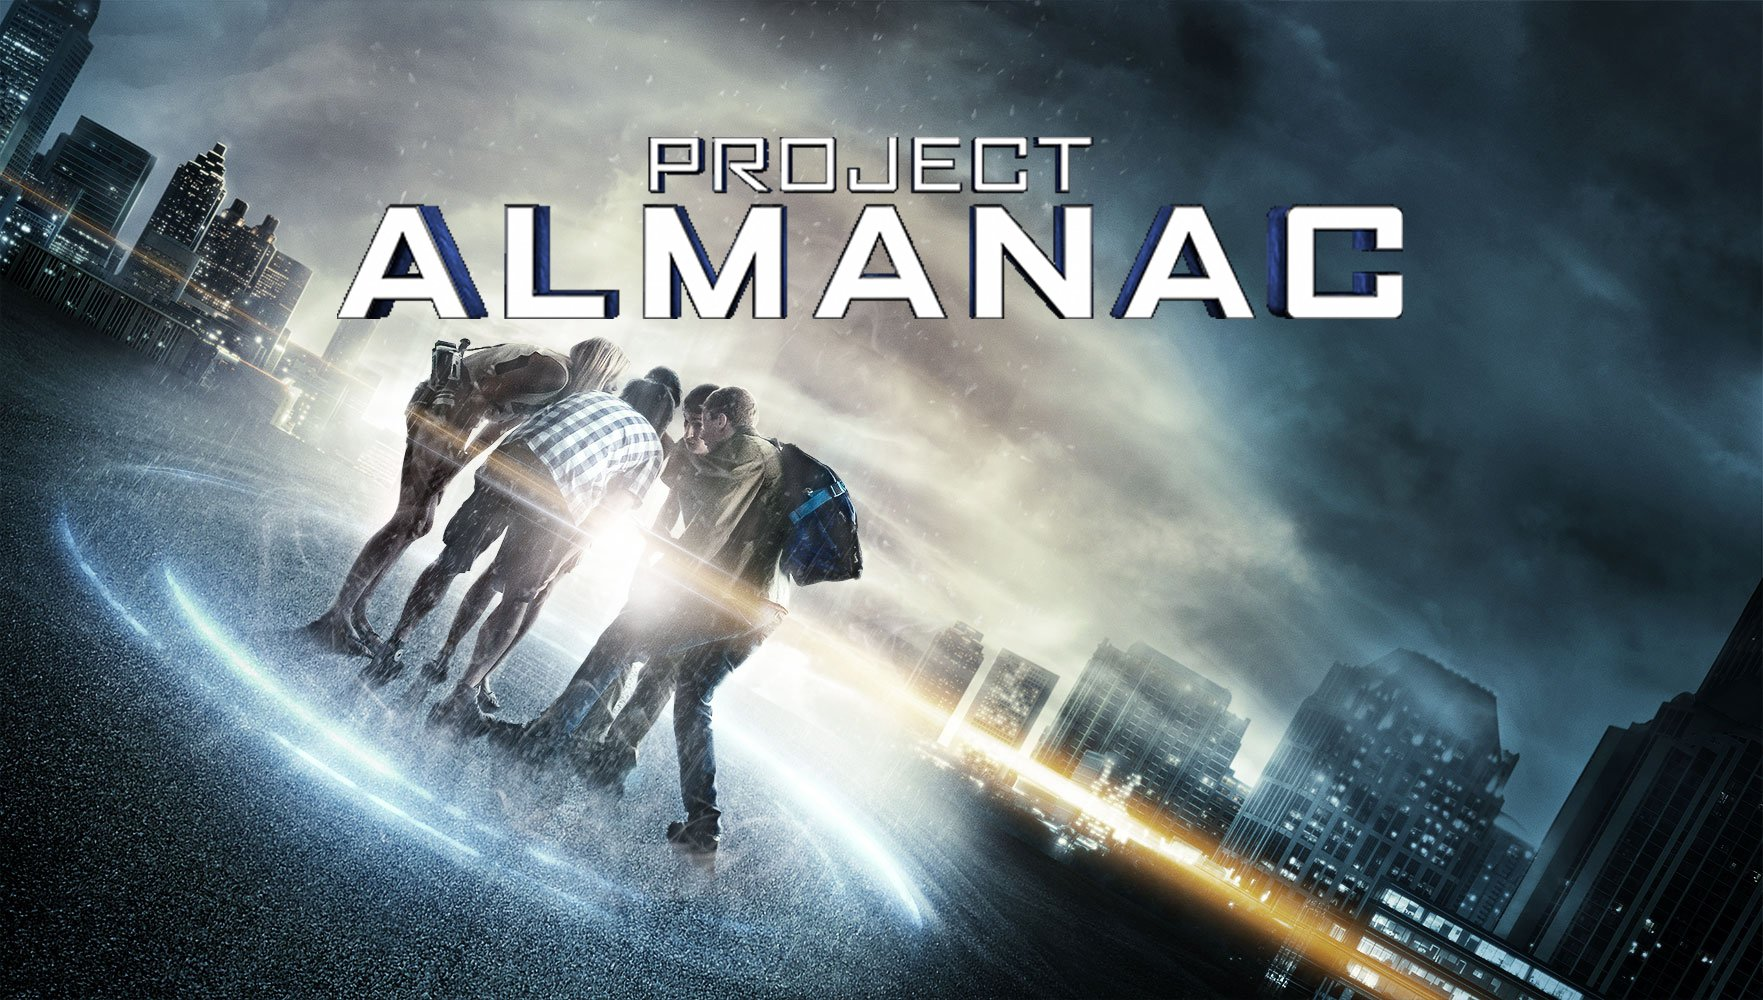 Project Almanac - Critique du film de Dean Israelite